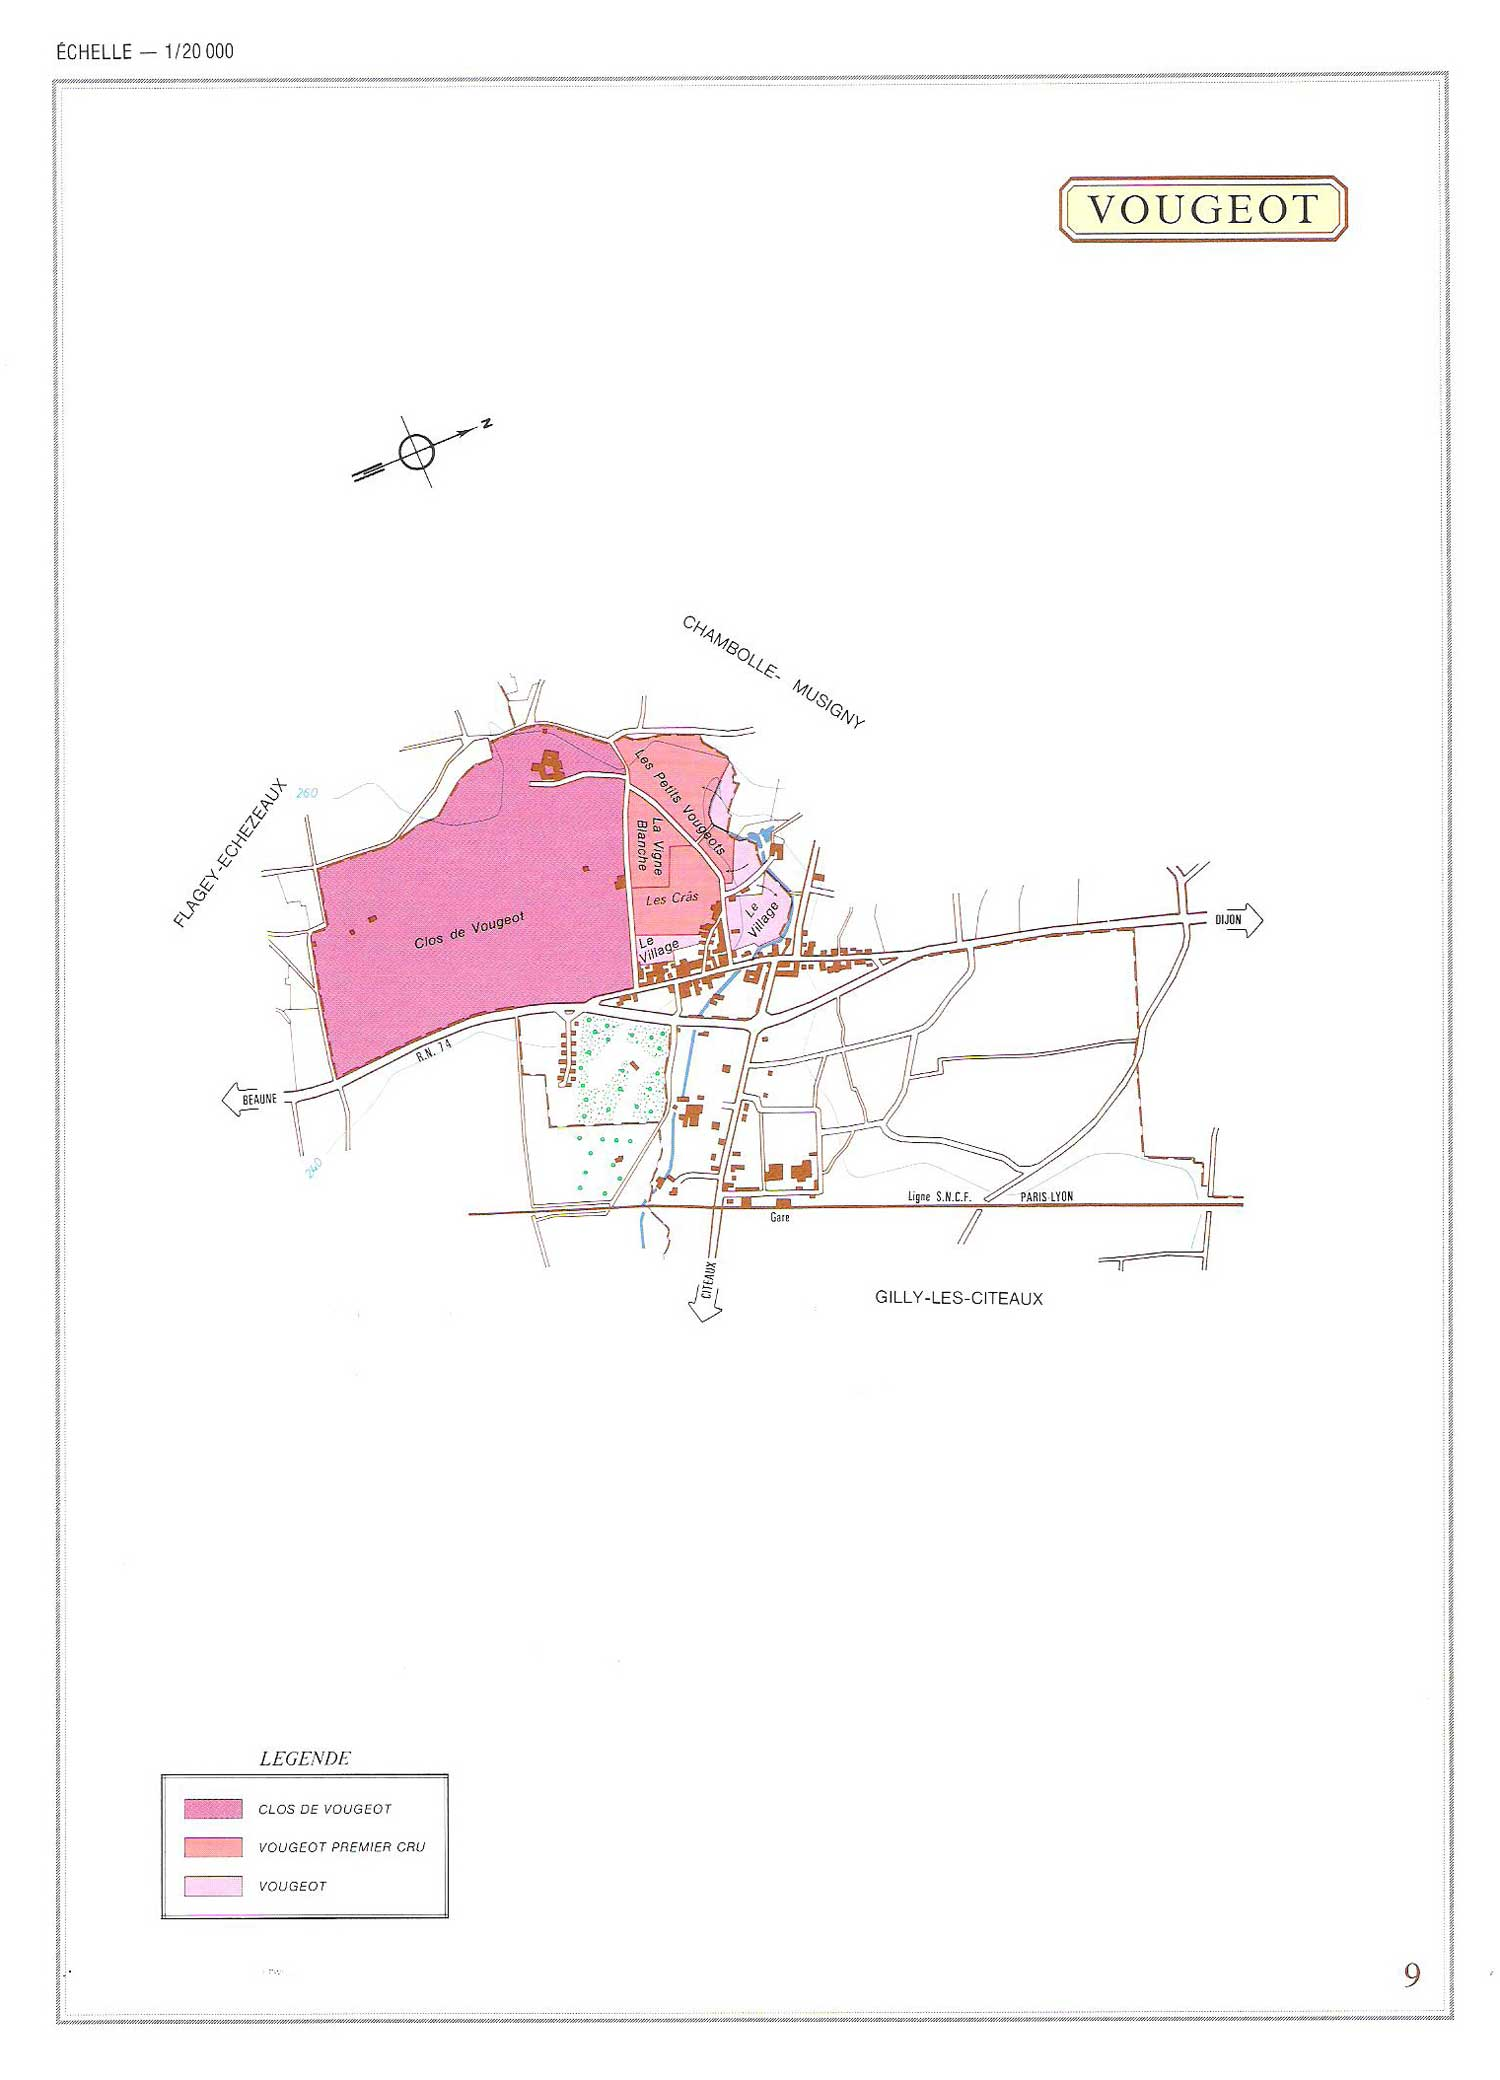 Picture of Vougeot Vineyard Map